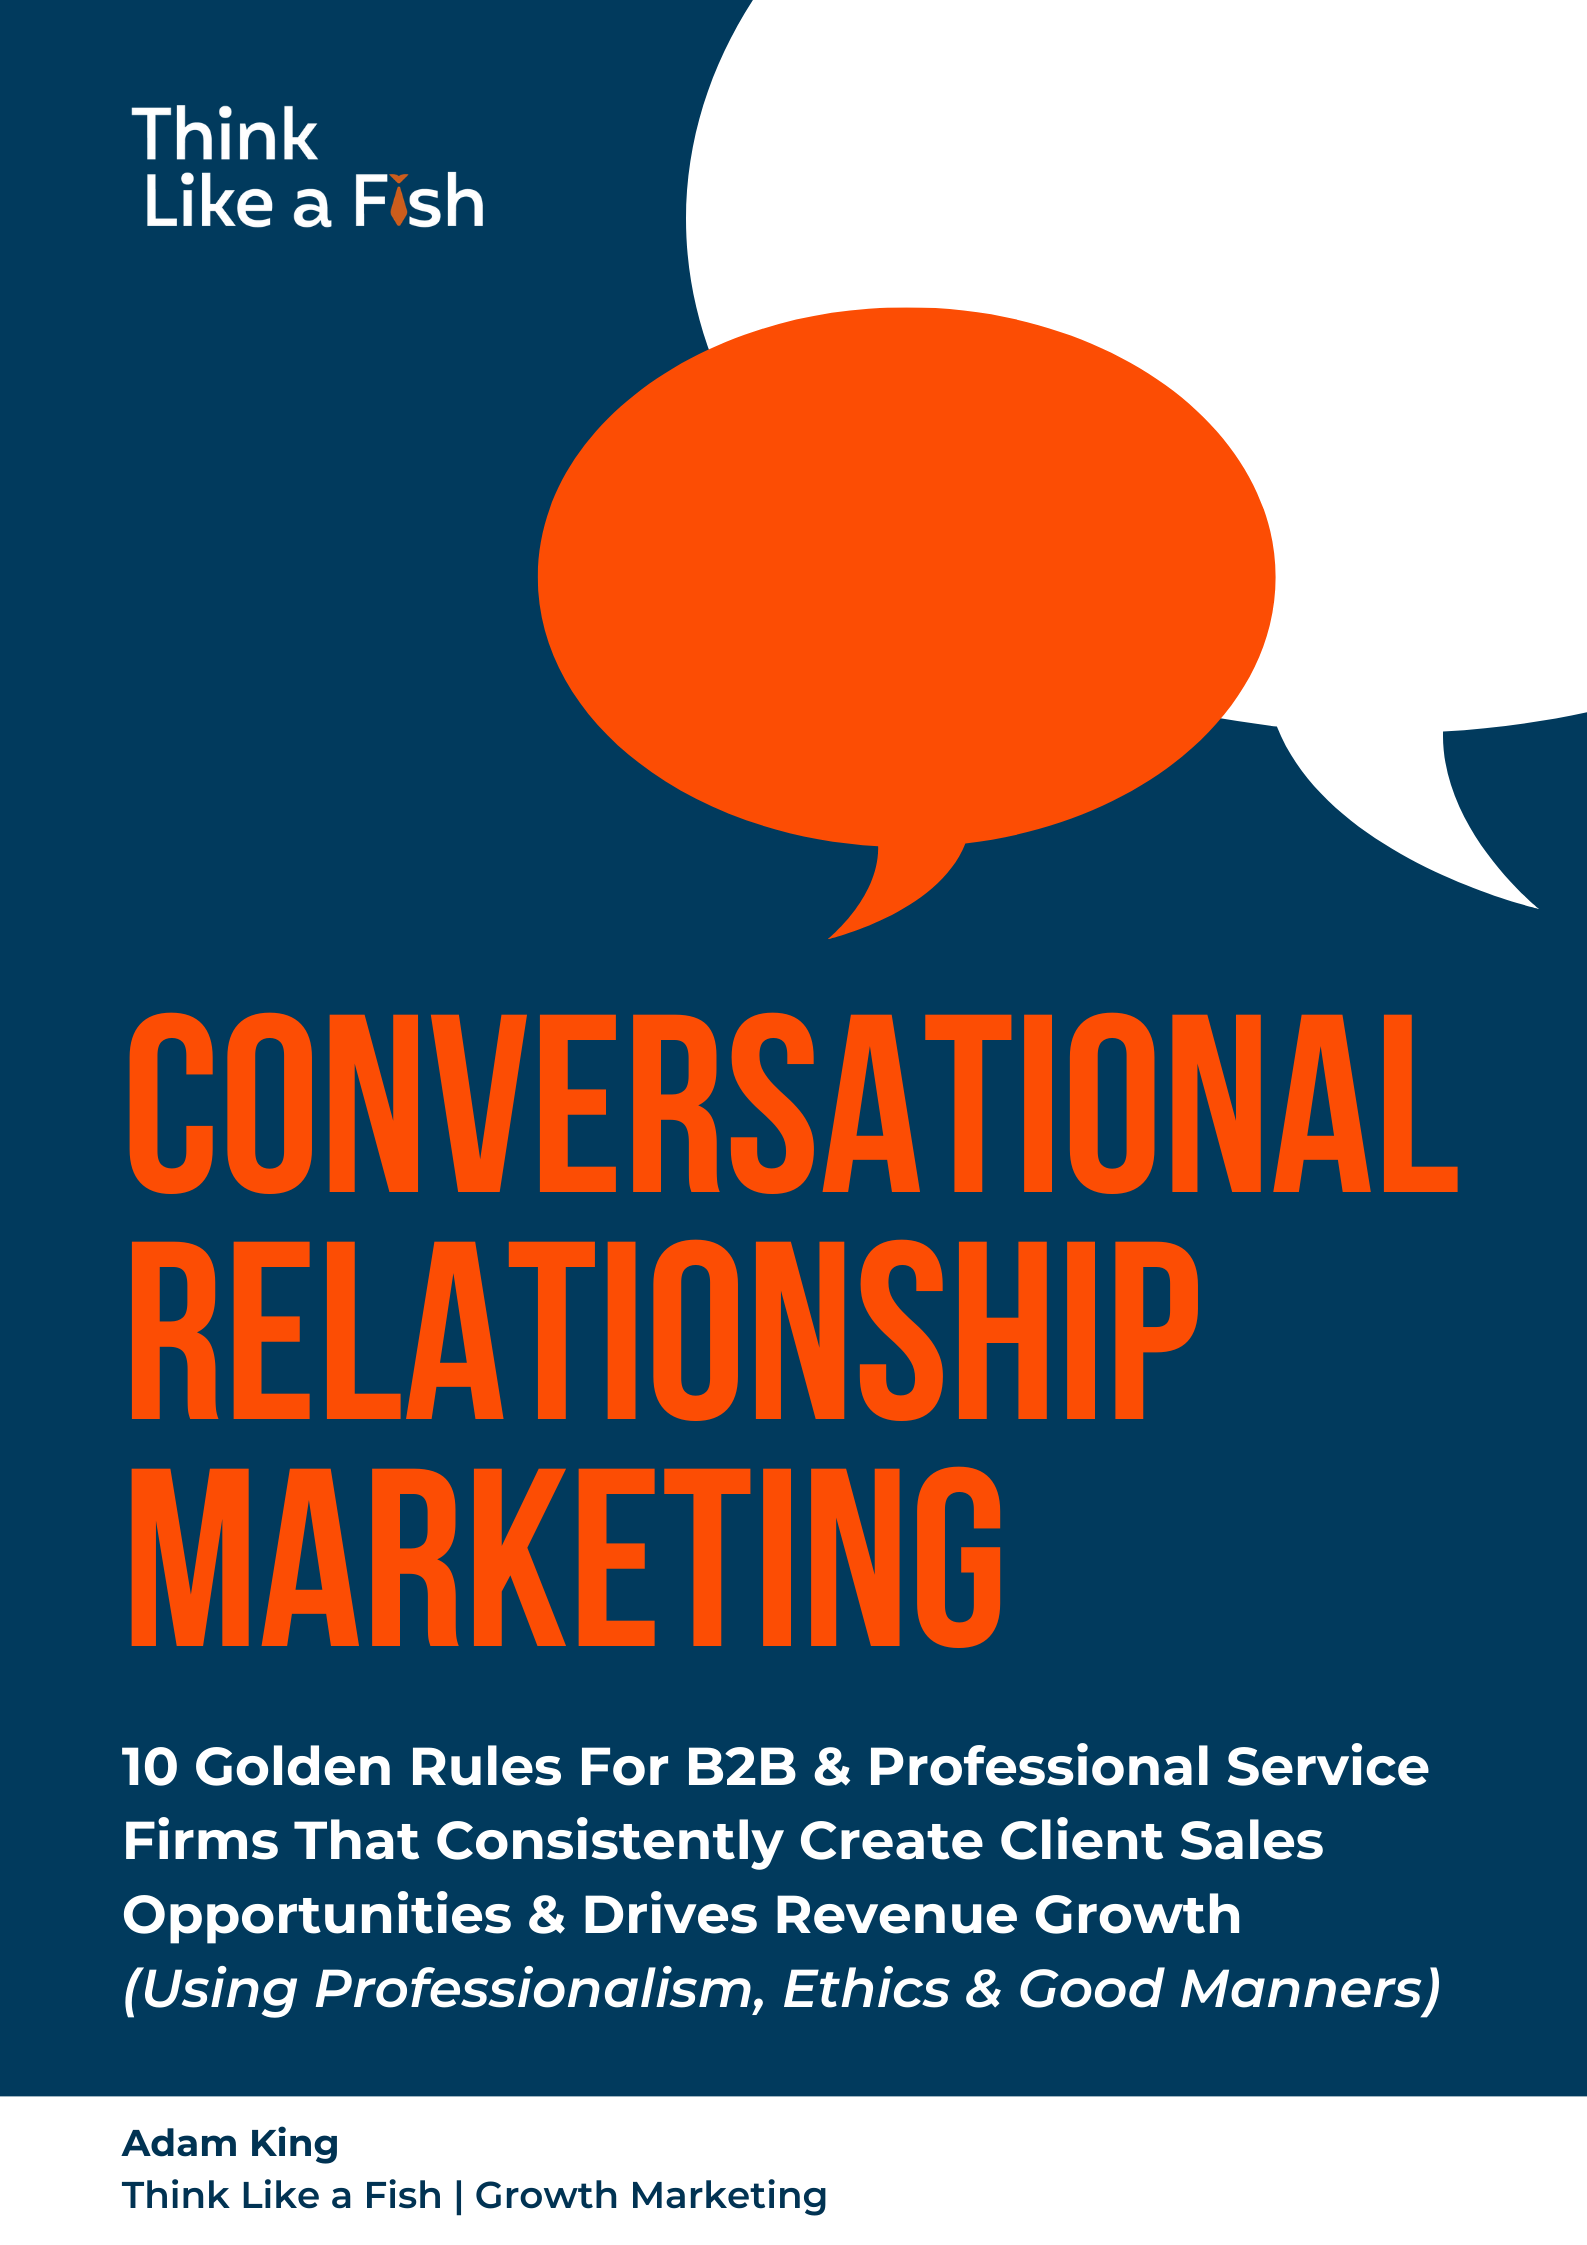 Conversational Relationship Marketing Book - Adam King - Think Like a Fish